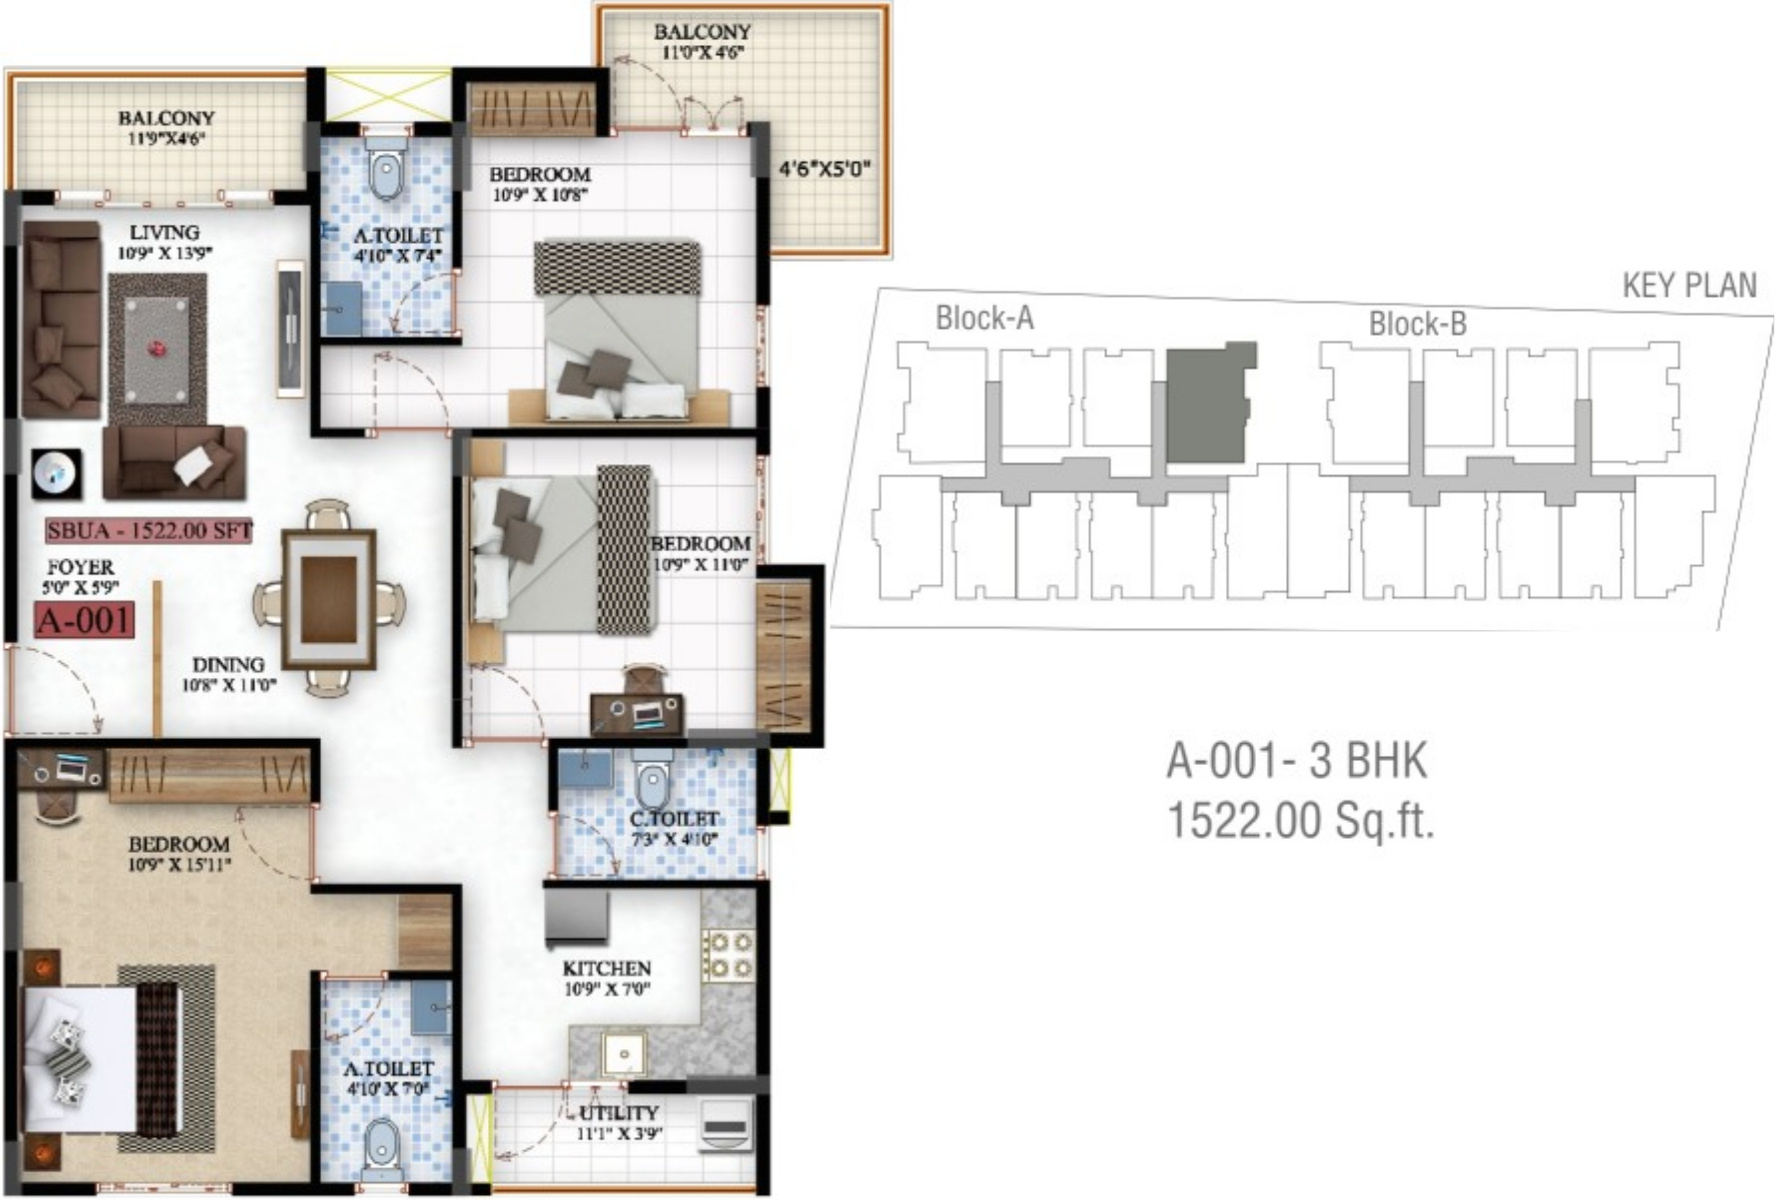 Saibya sterling in hsr layout bangalore price location for Sterling plan